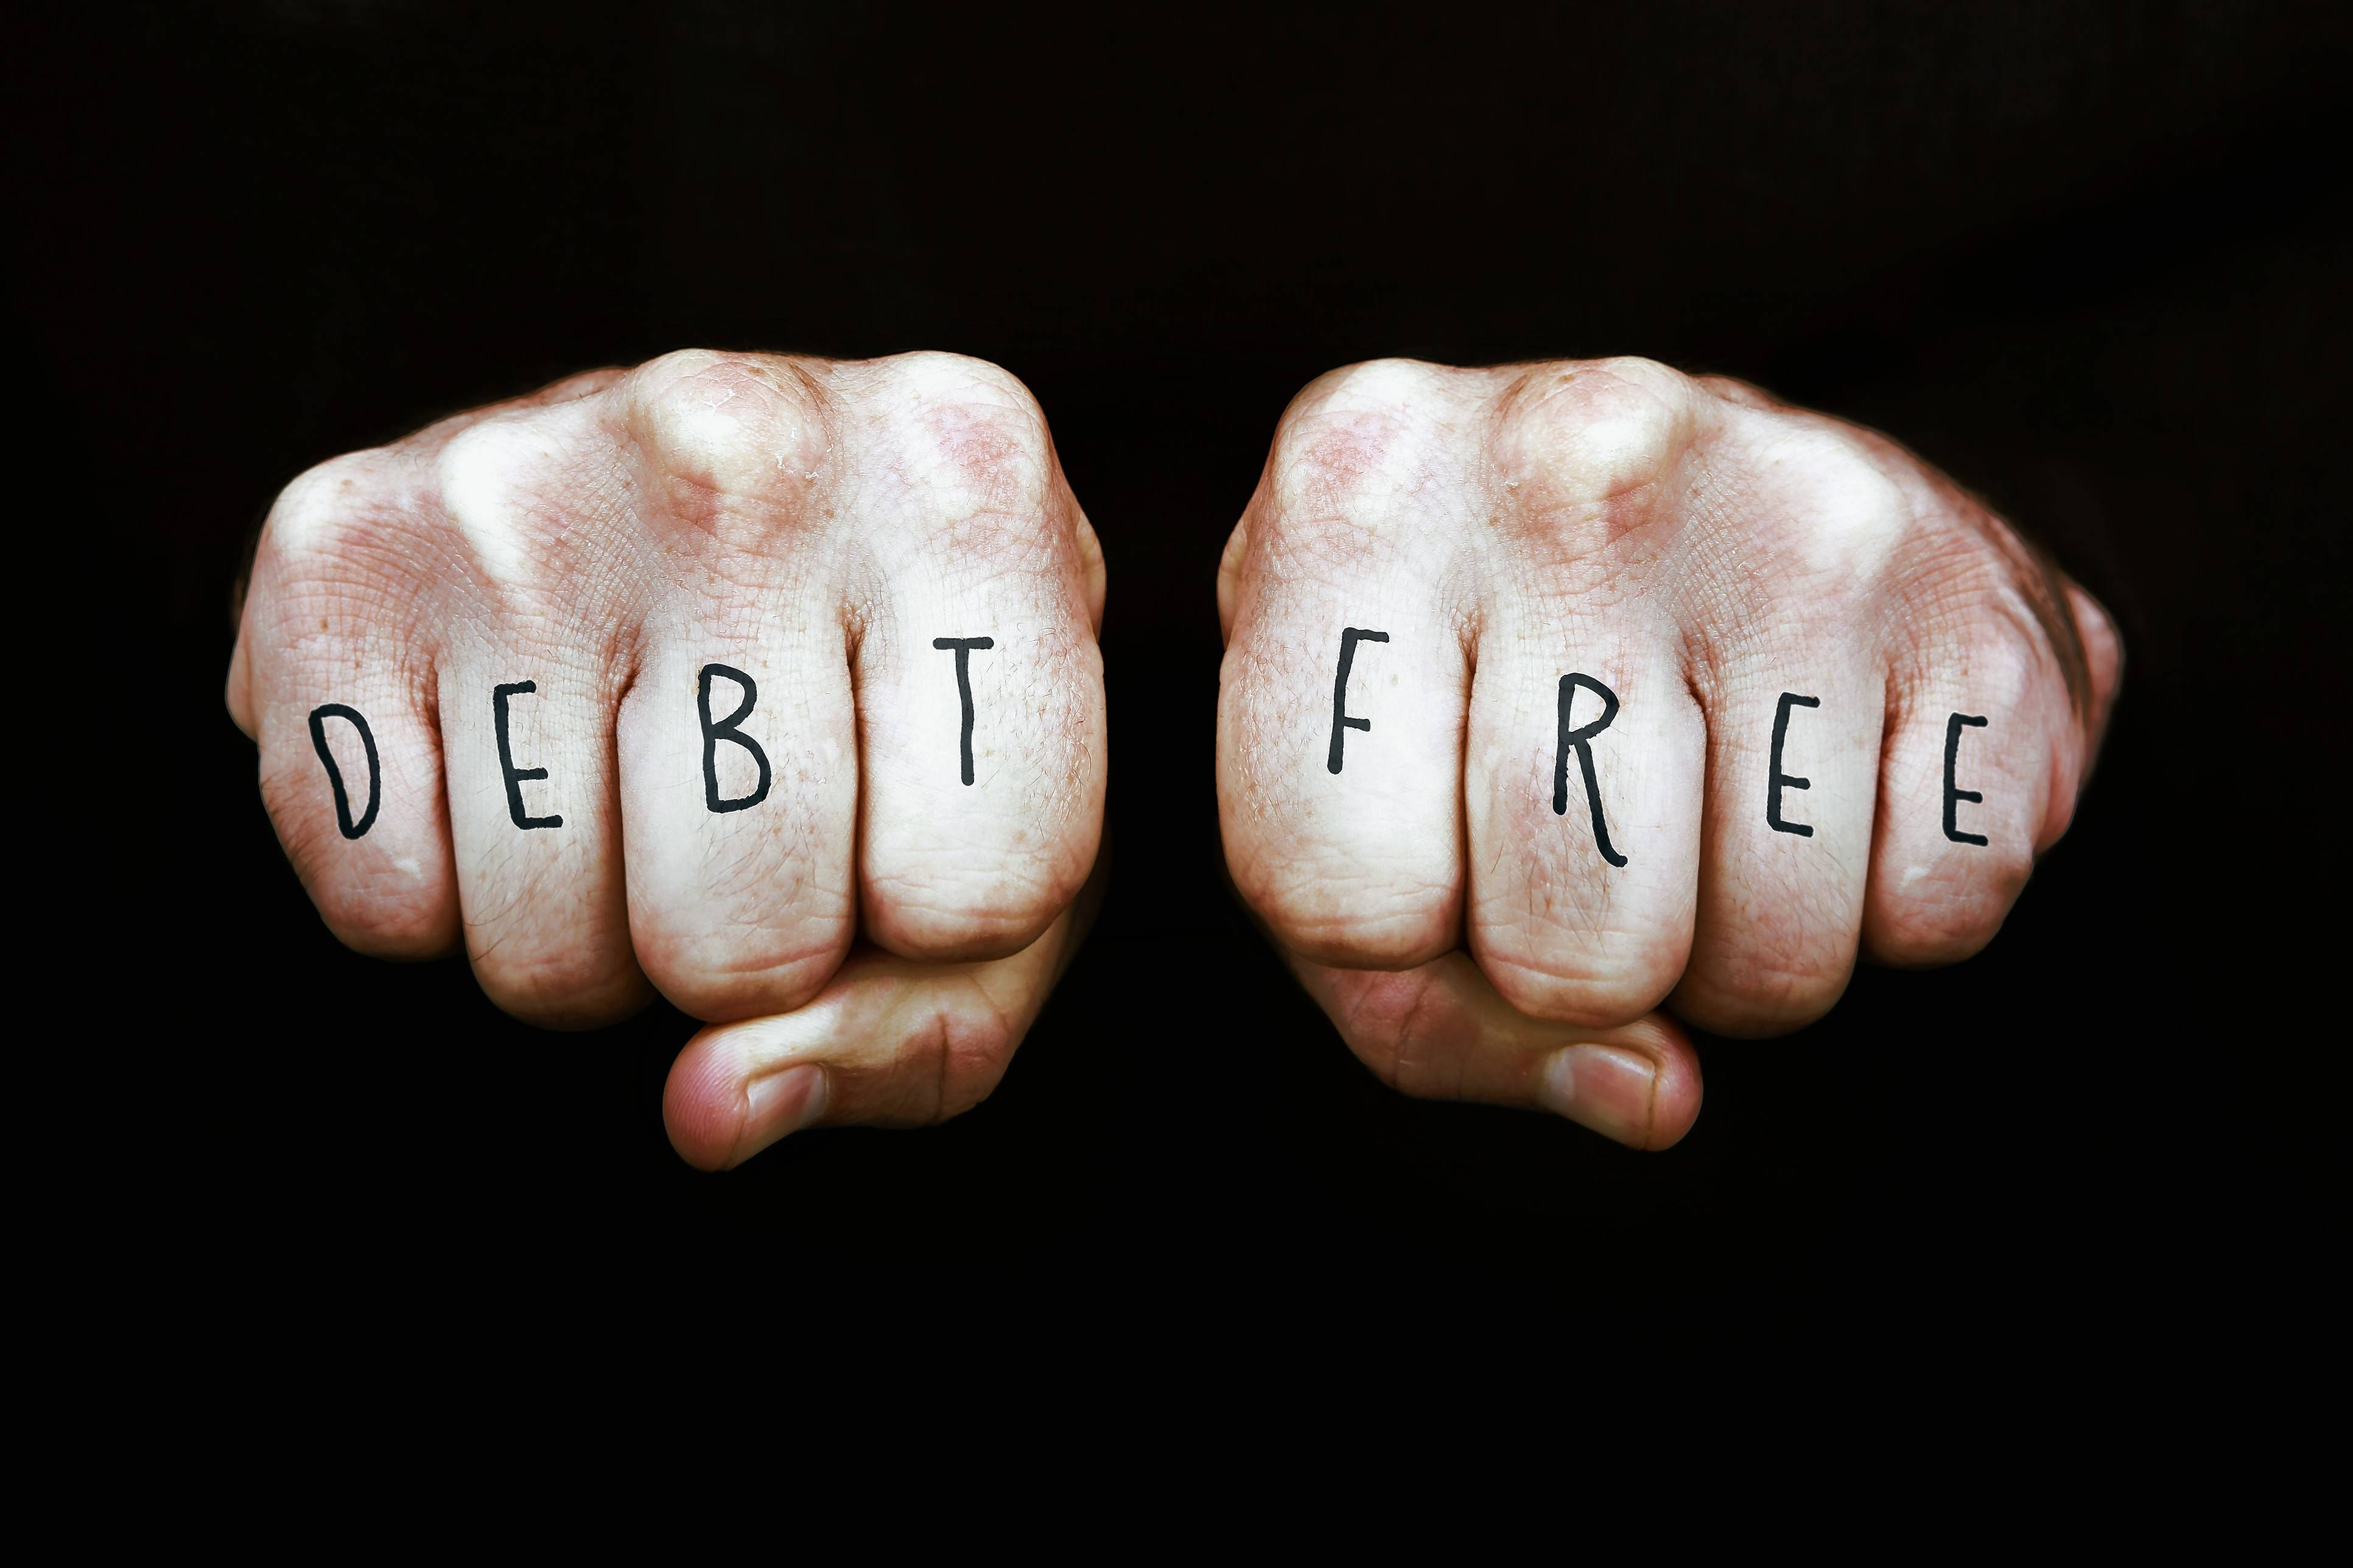 Becoming debt-free can be a worthy goal, but understanding the pitfalls can keep you from repeating others' mistakes.